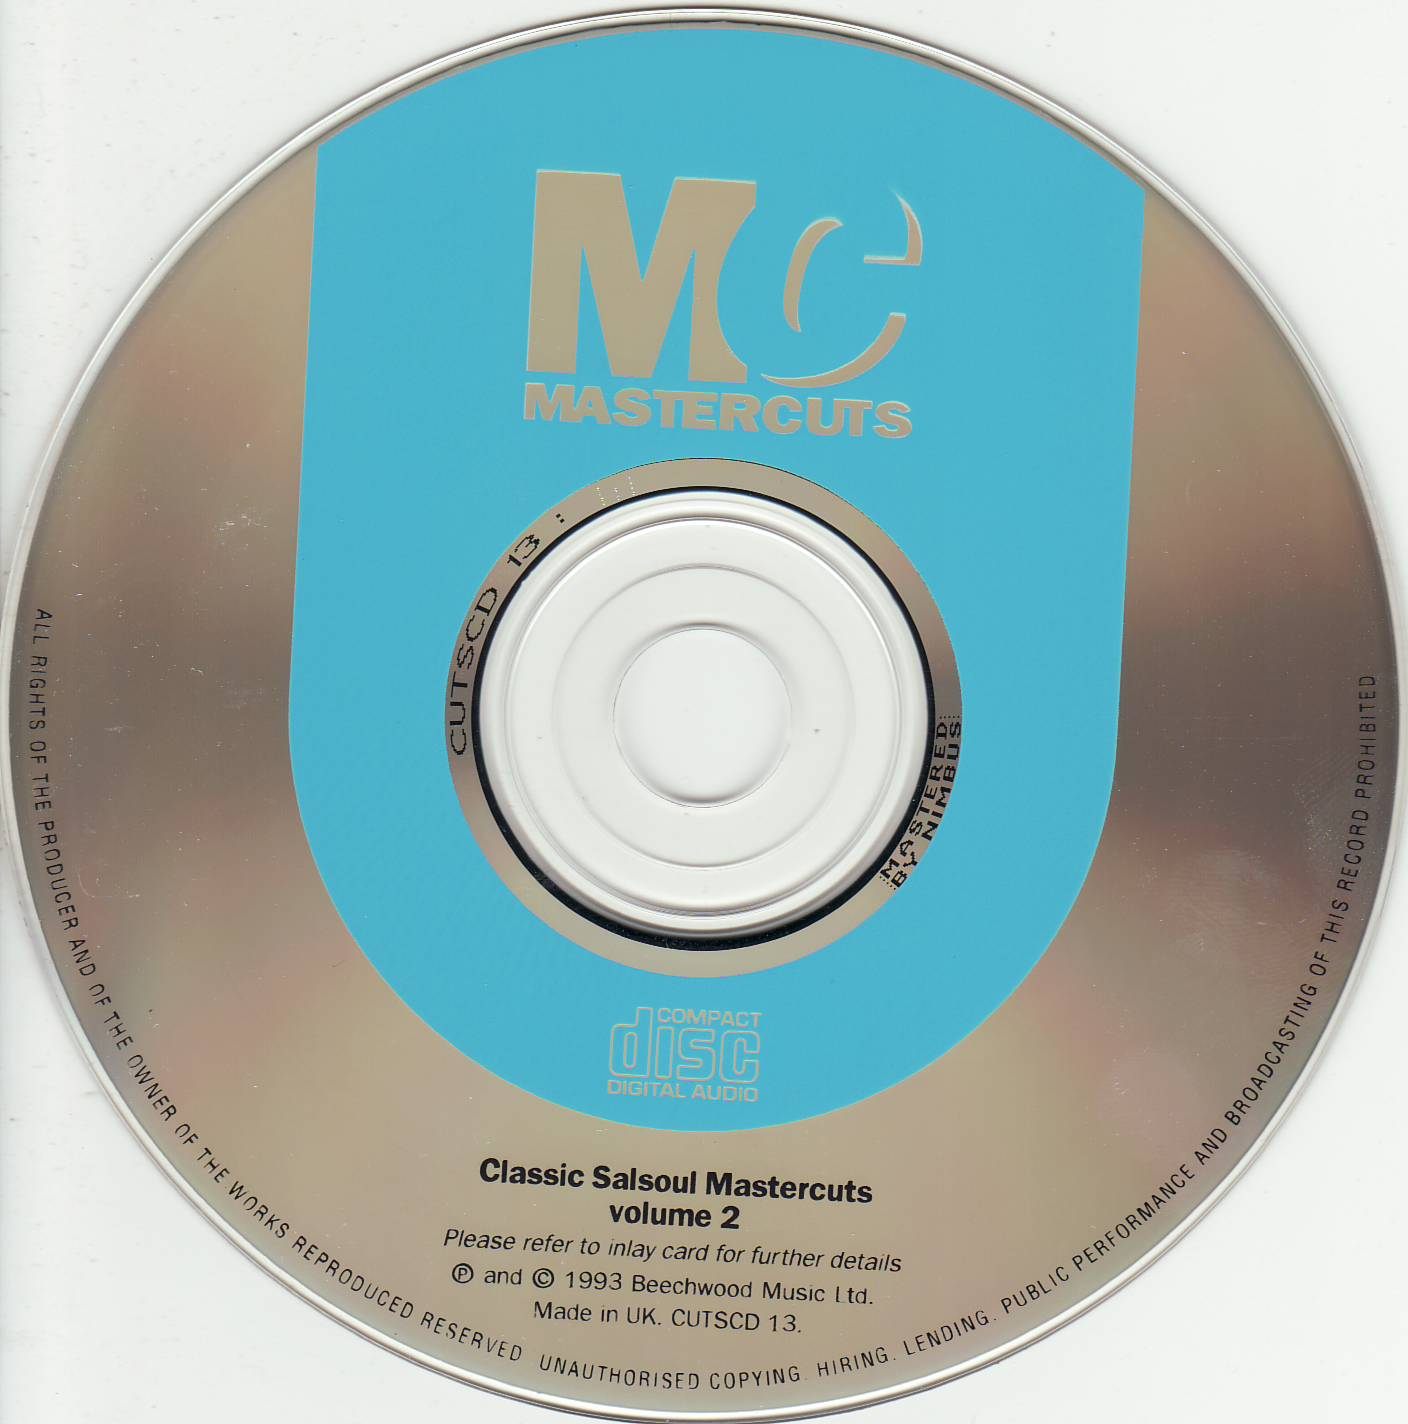 mc classic salsoul mastercuts vol 2 1993 at odimusic